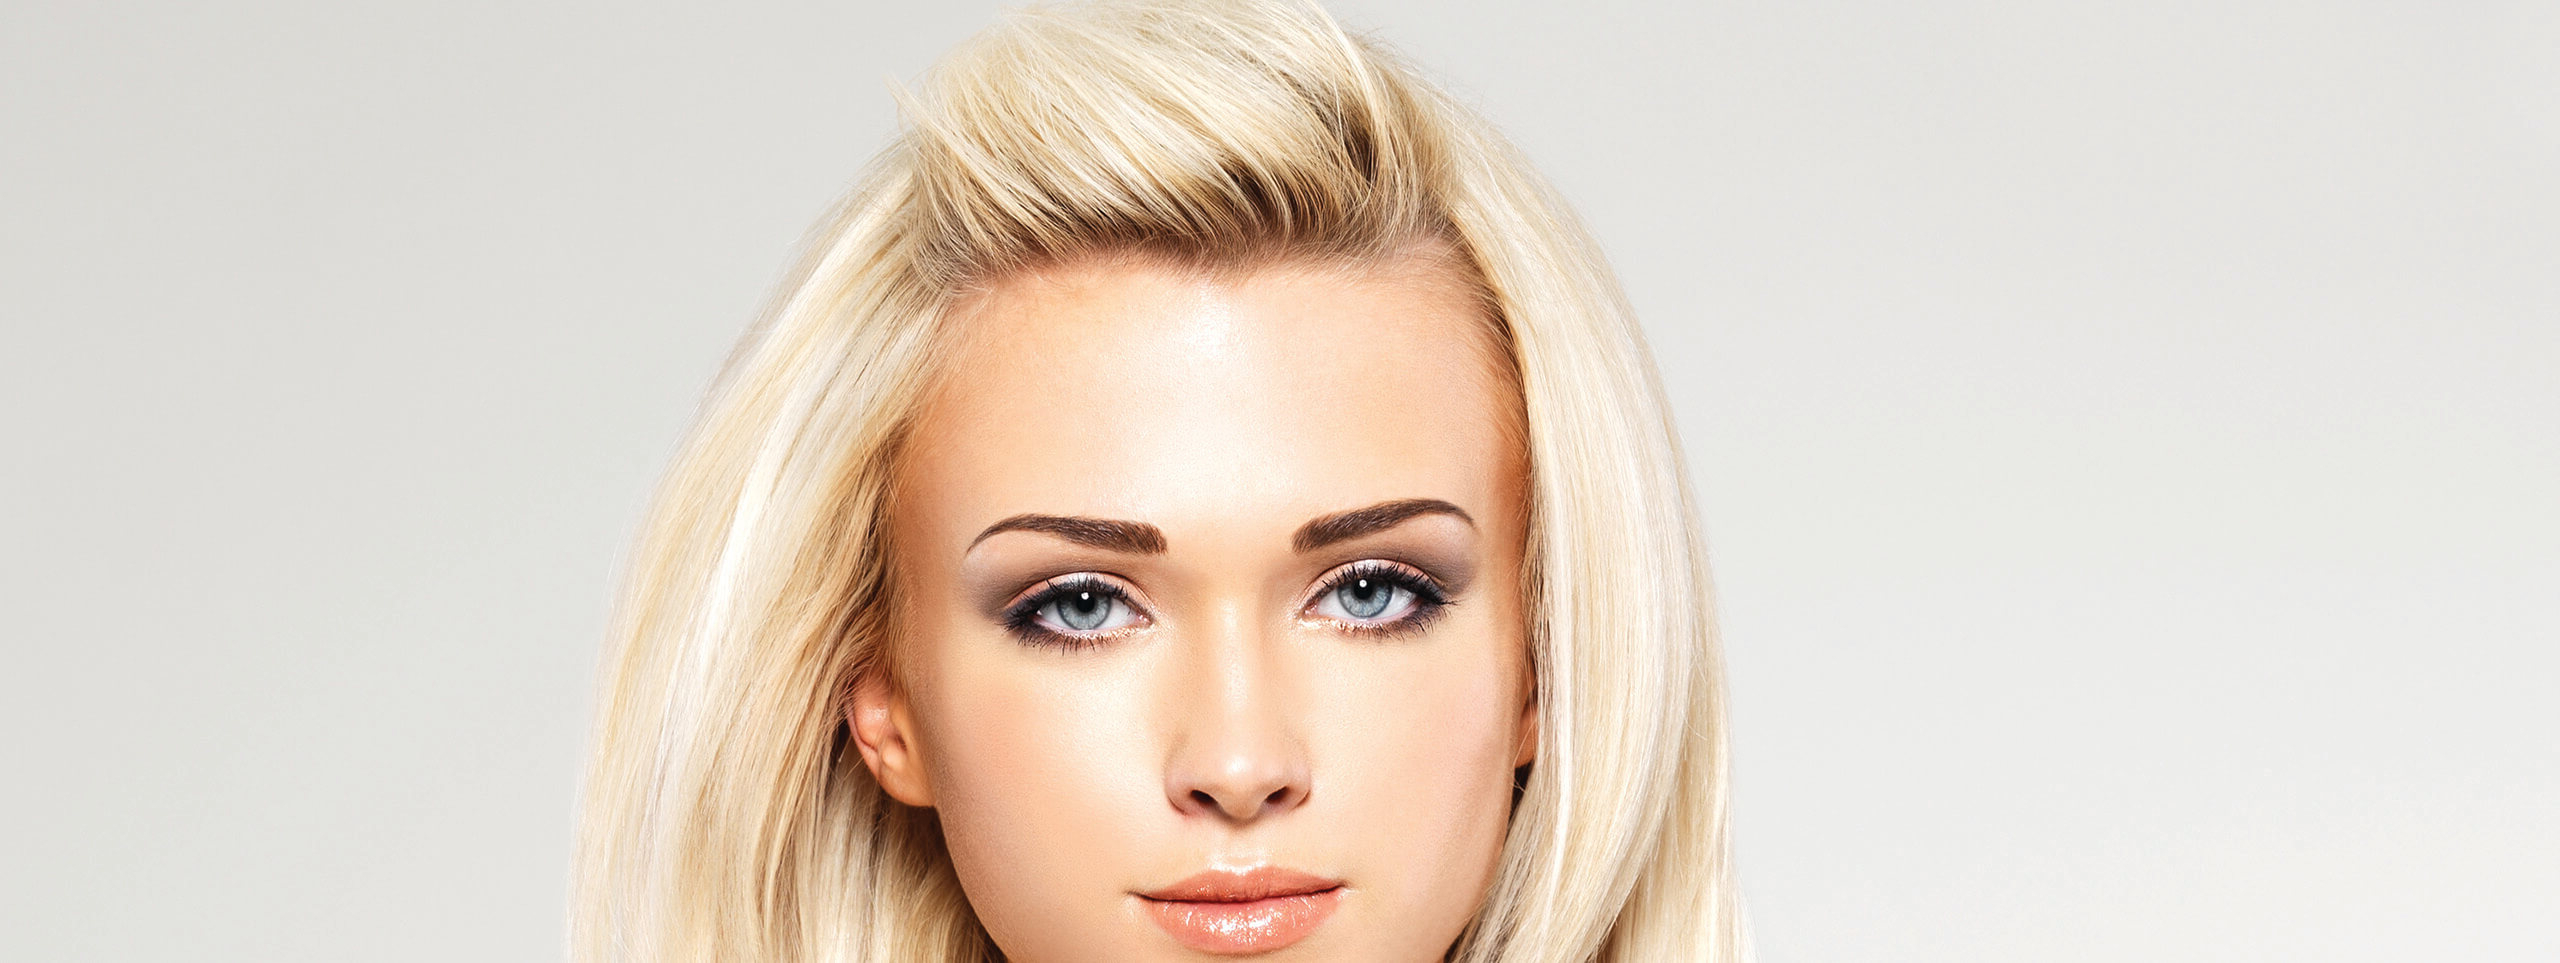 Most Popular Braids And Bouffant Hairstyles Within Bouffant Hair: The Step By Step Guide (View 11 of 20)